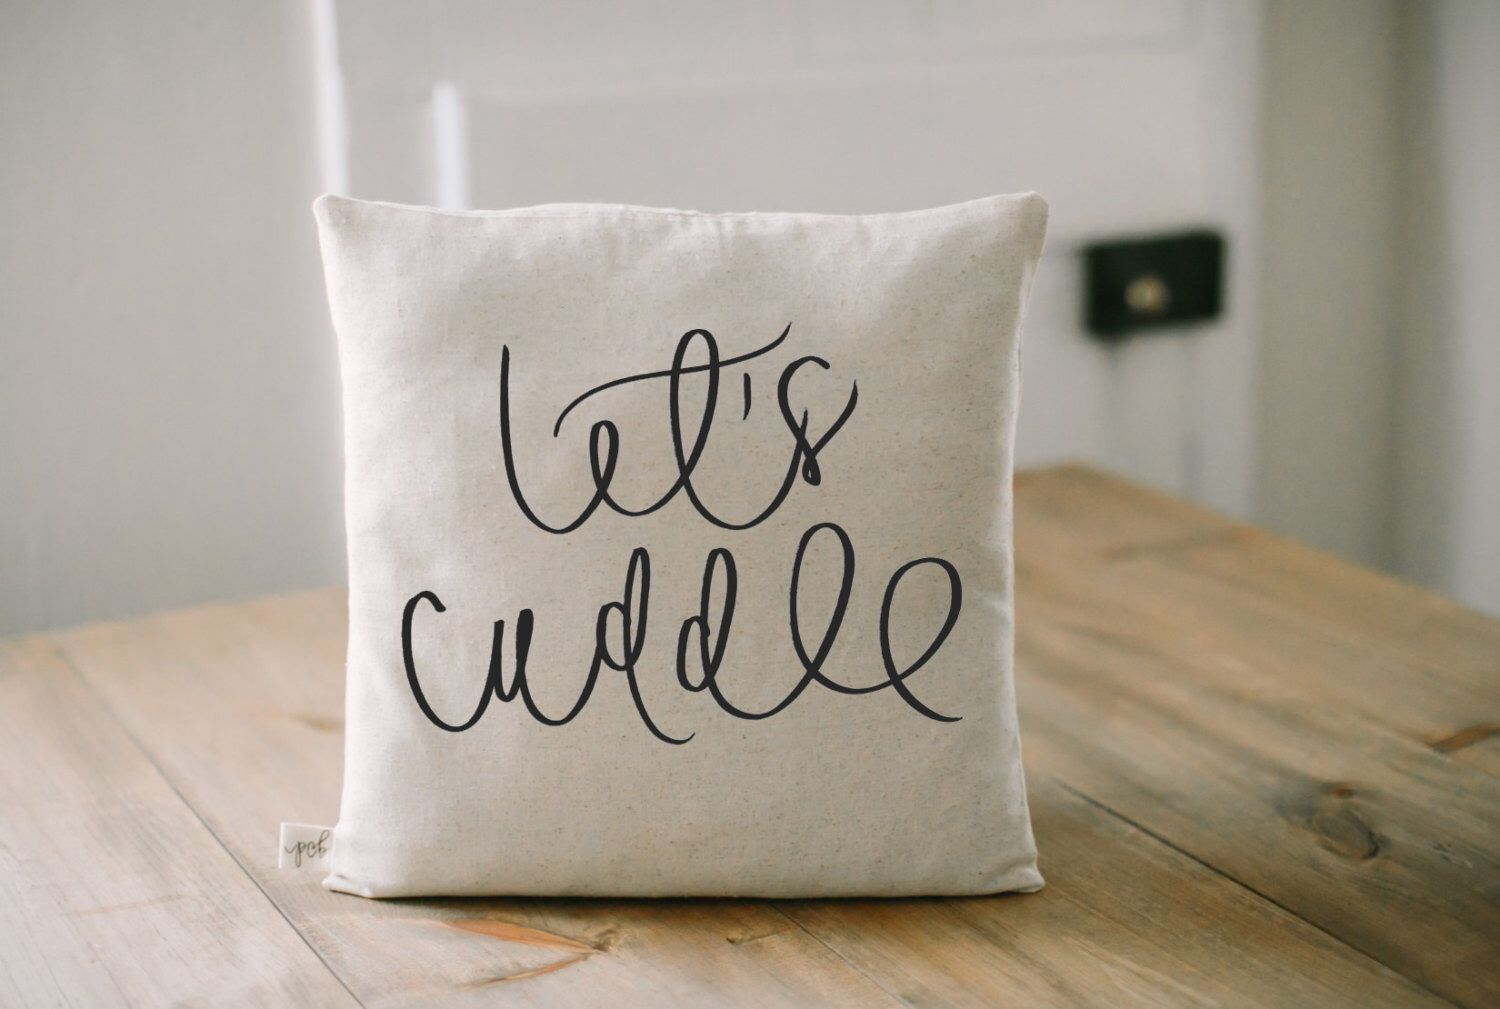 Pillow cover letus cuddle x present housewarming gift